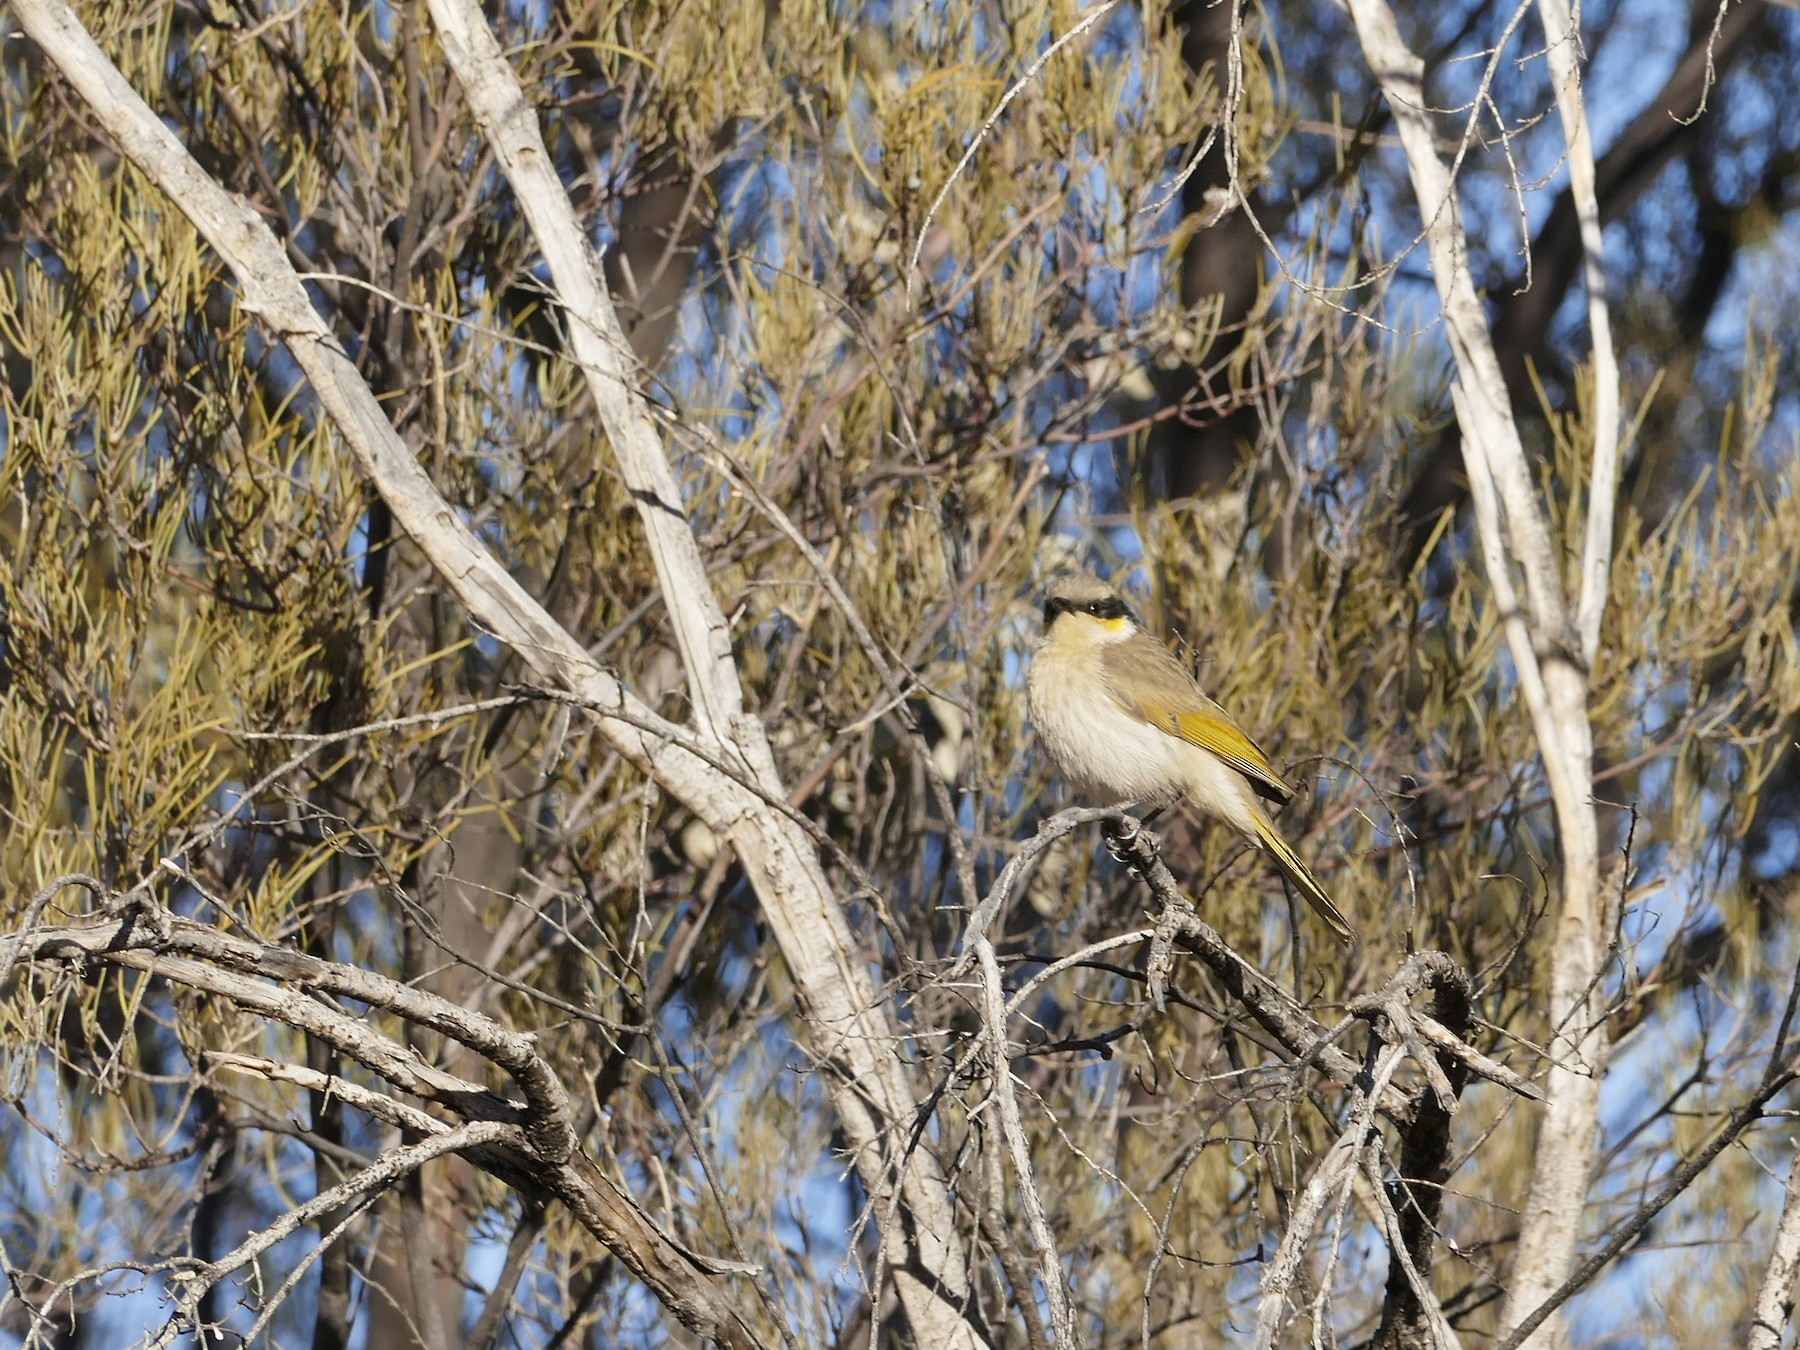 Singing Honeyeater - Andrew Hogg